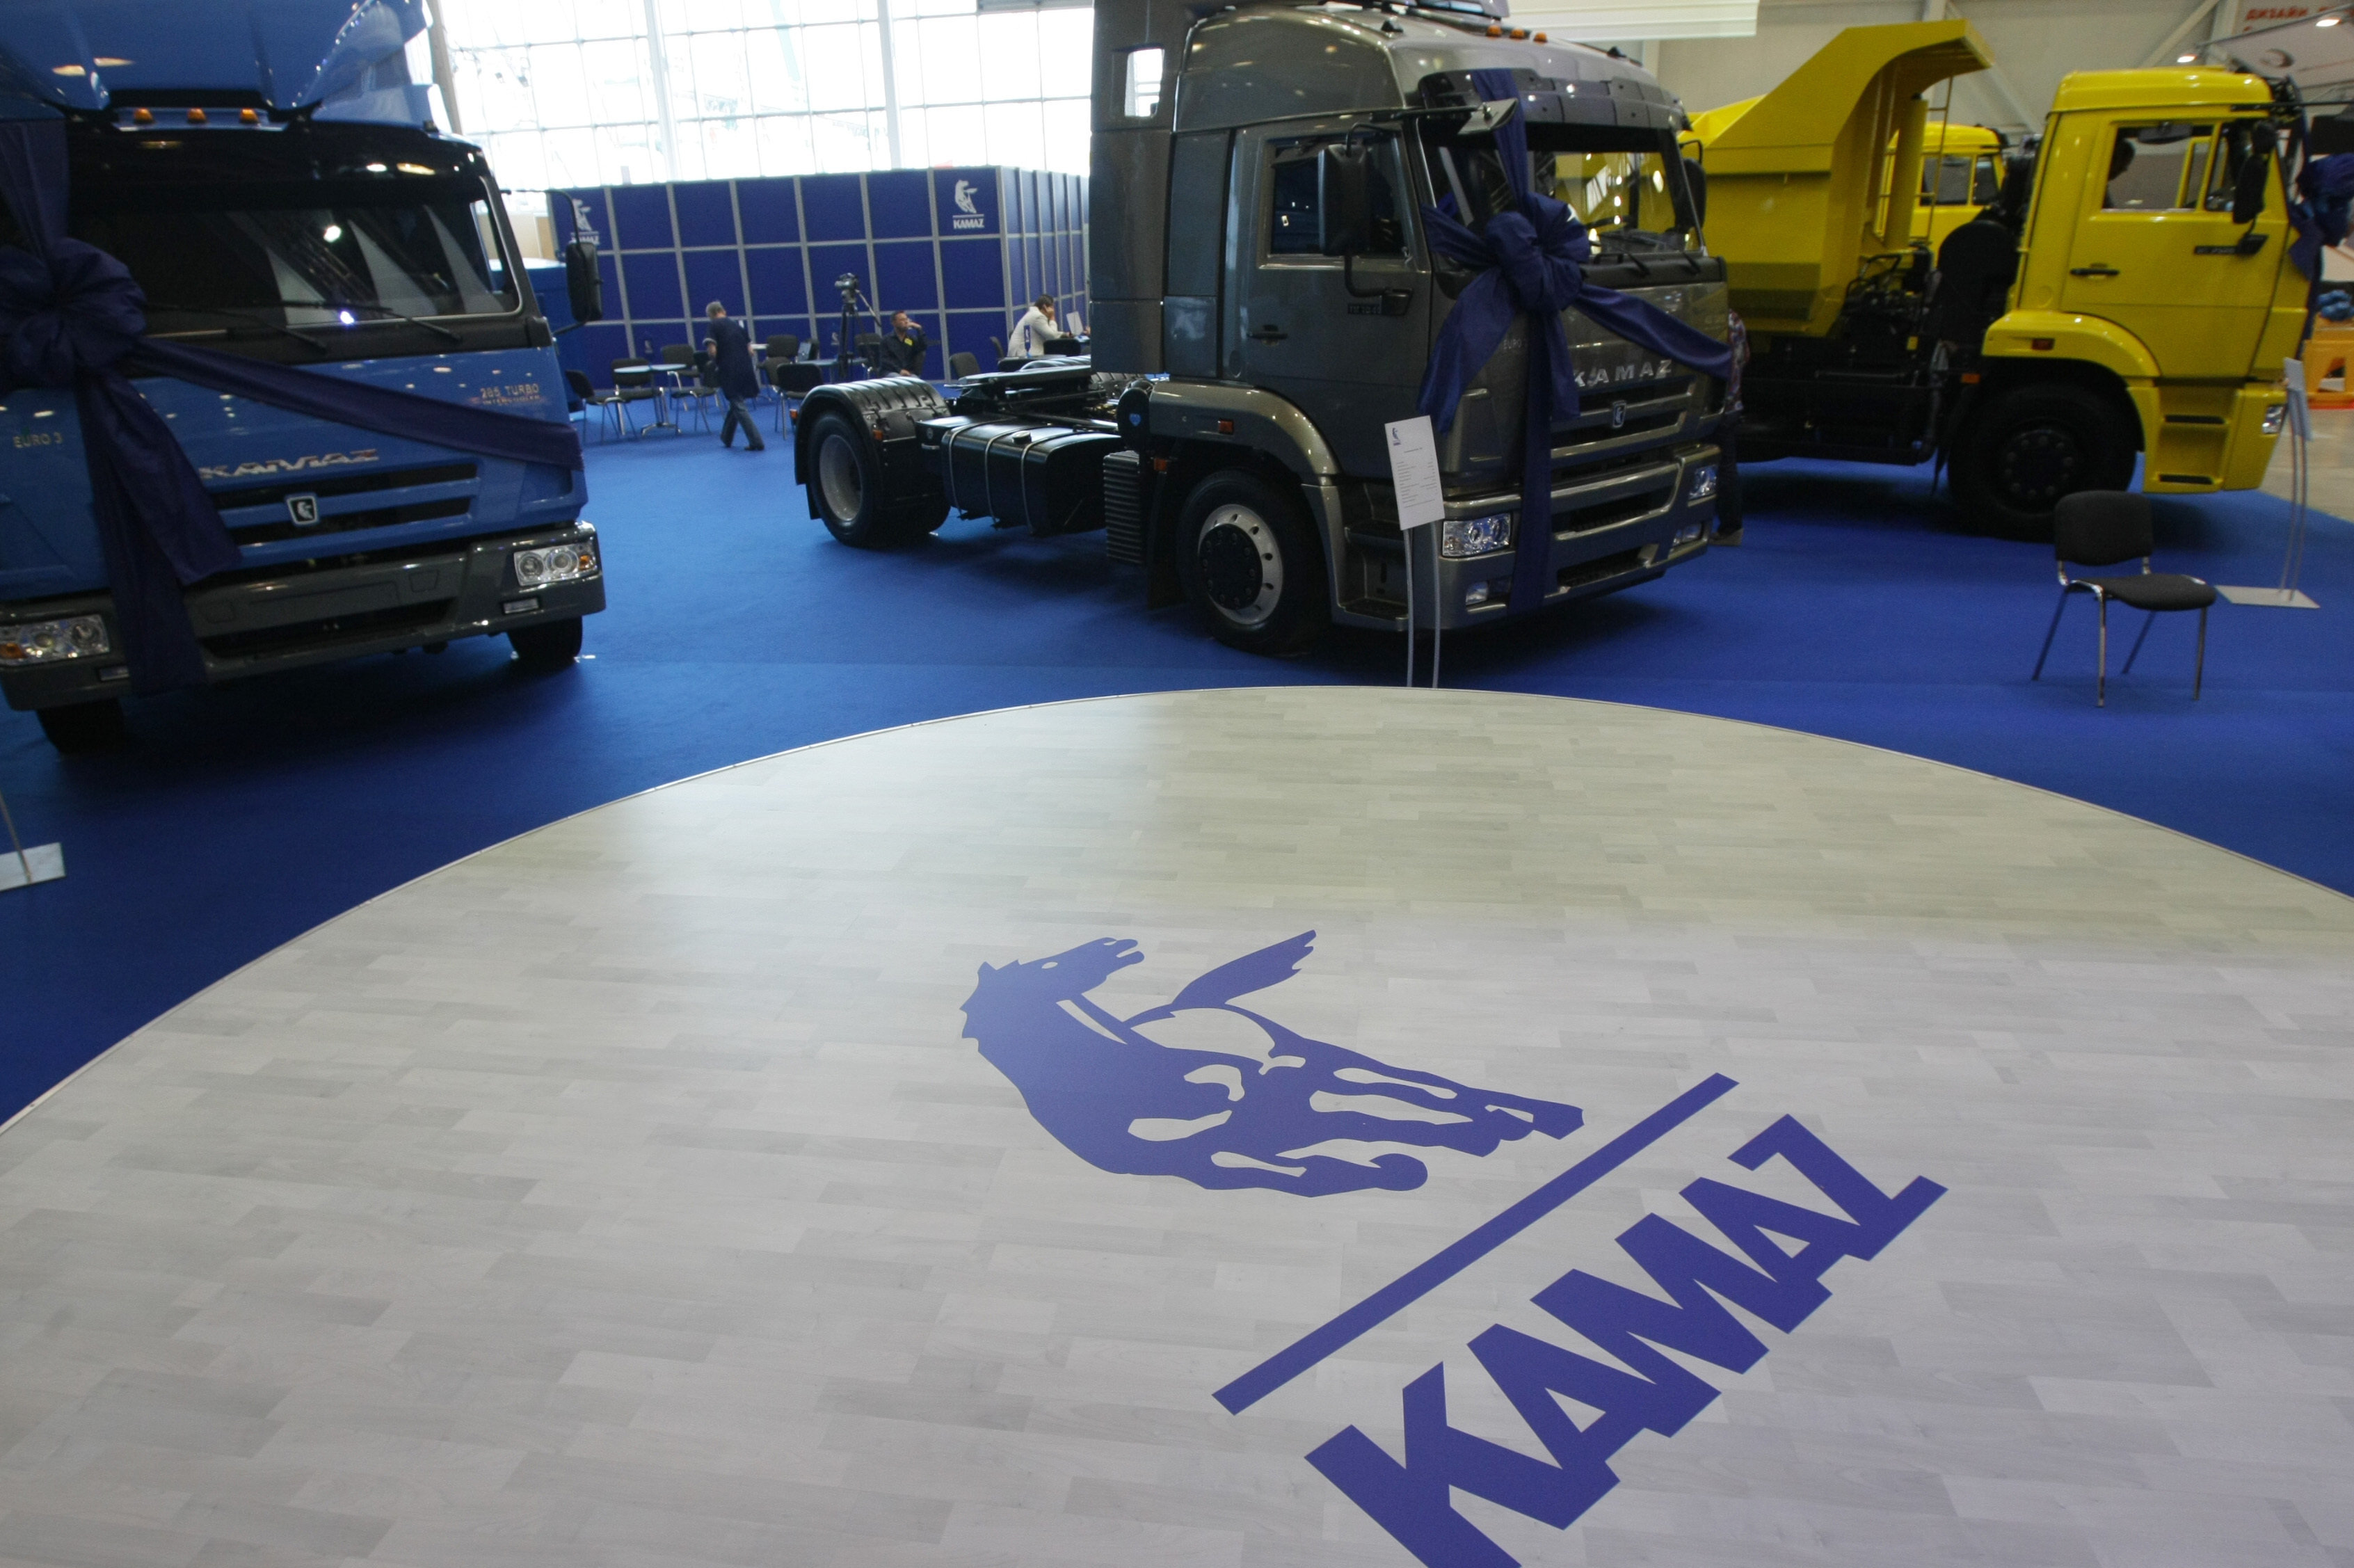 While serving as the workhorse of the military's truck fleet, Russian truck maker Kamaz has also been busy modernizing its civilian vehicle offerings.